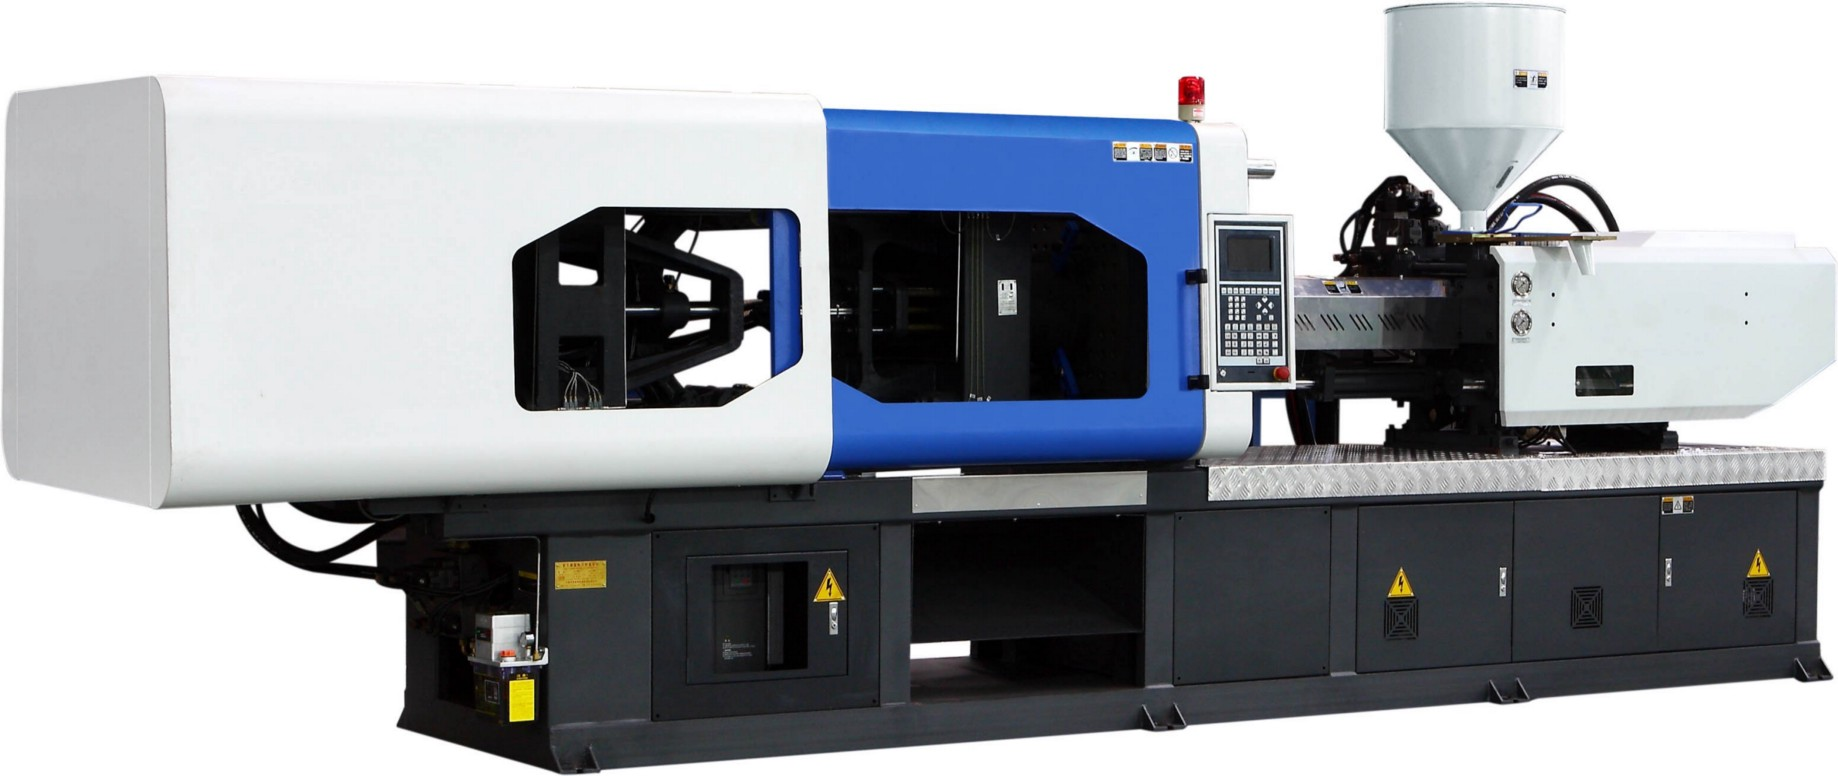 Why 3D Printing is the answer for short-series production